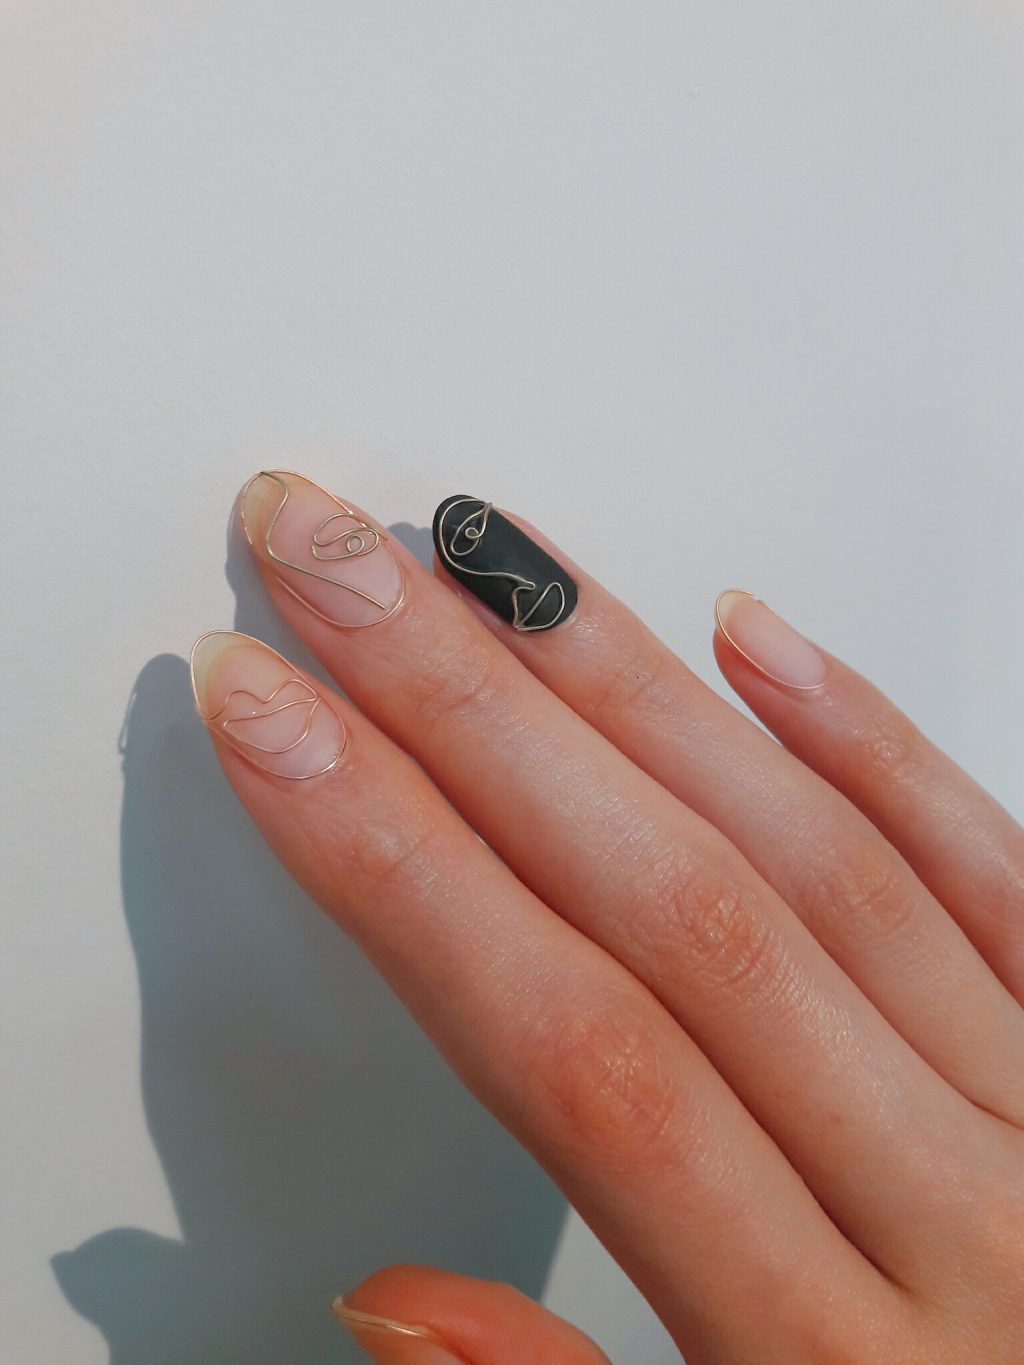 Les wire nails d'Unistella